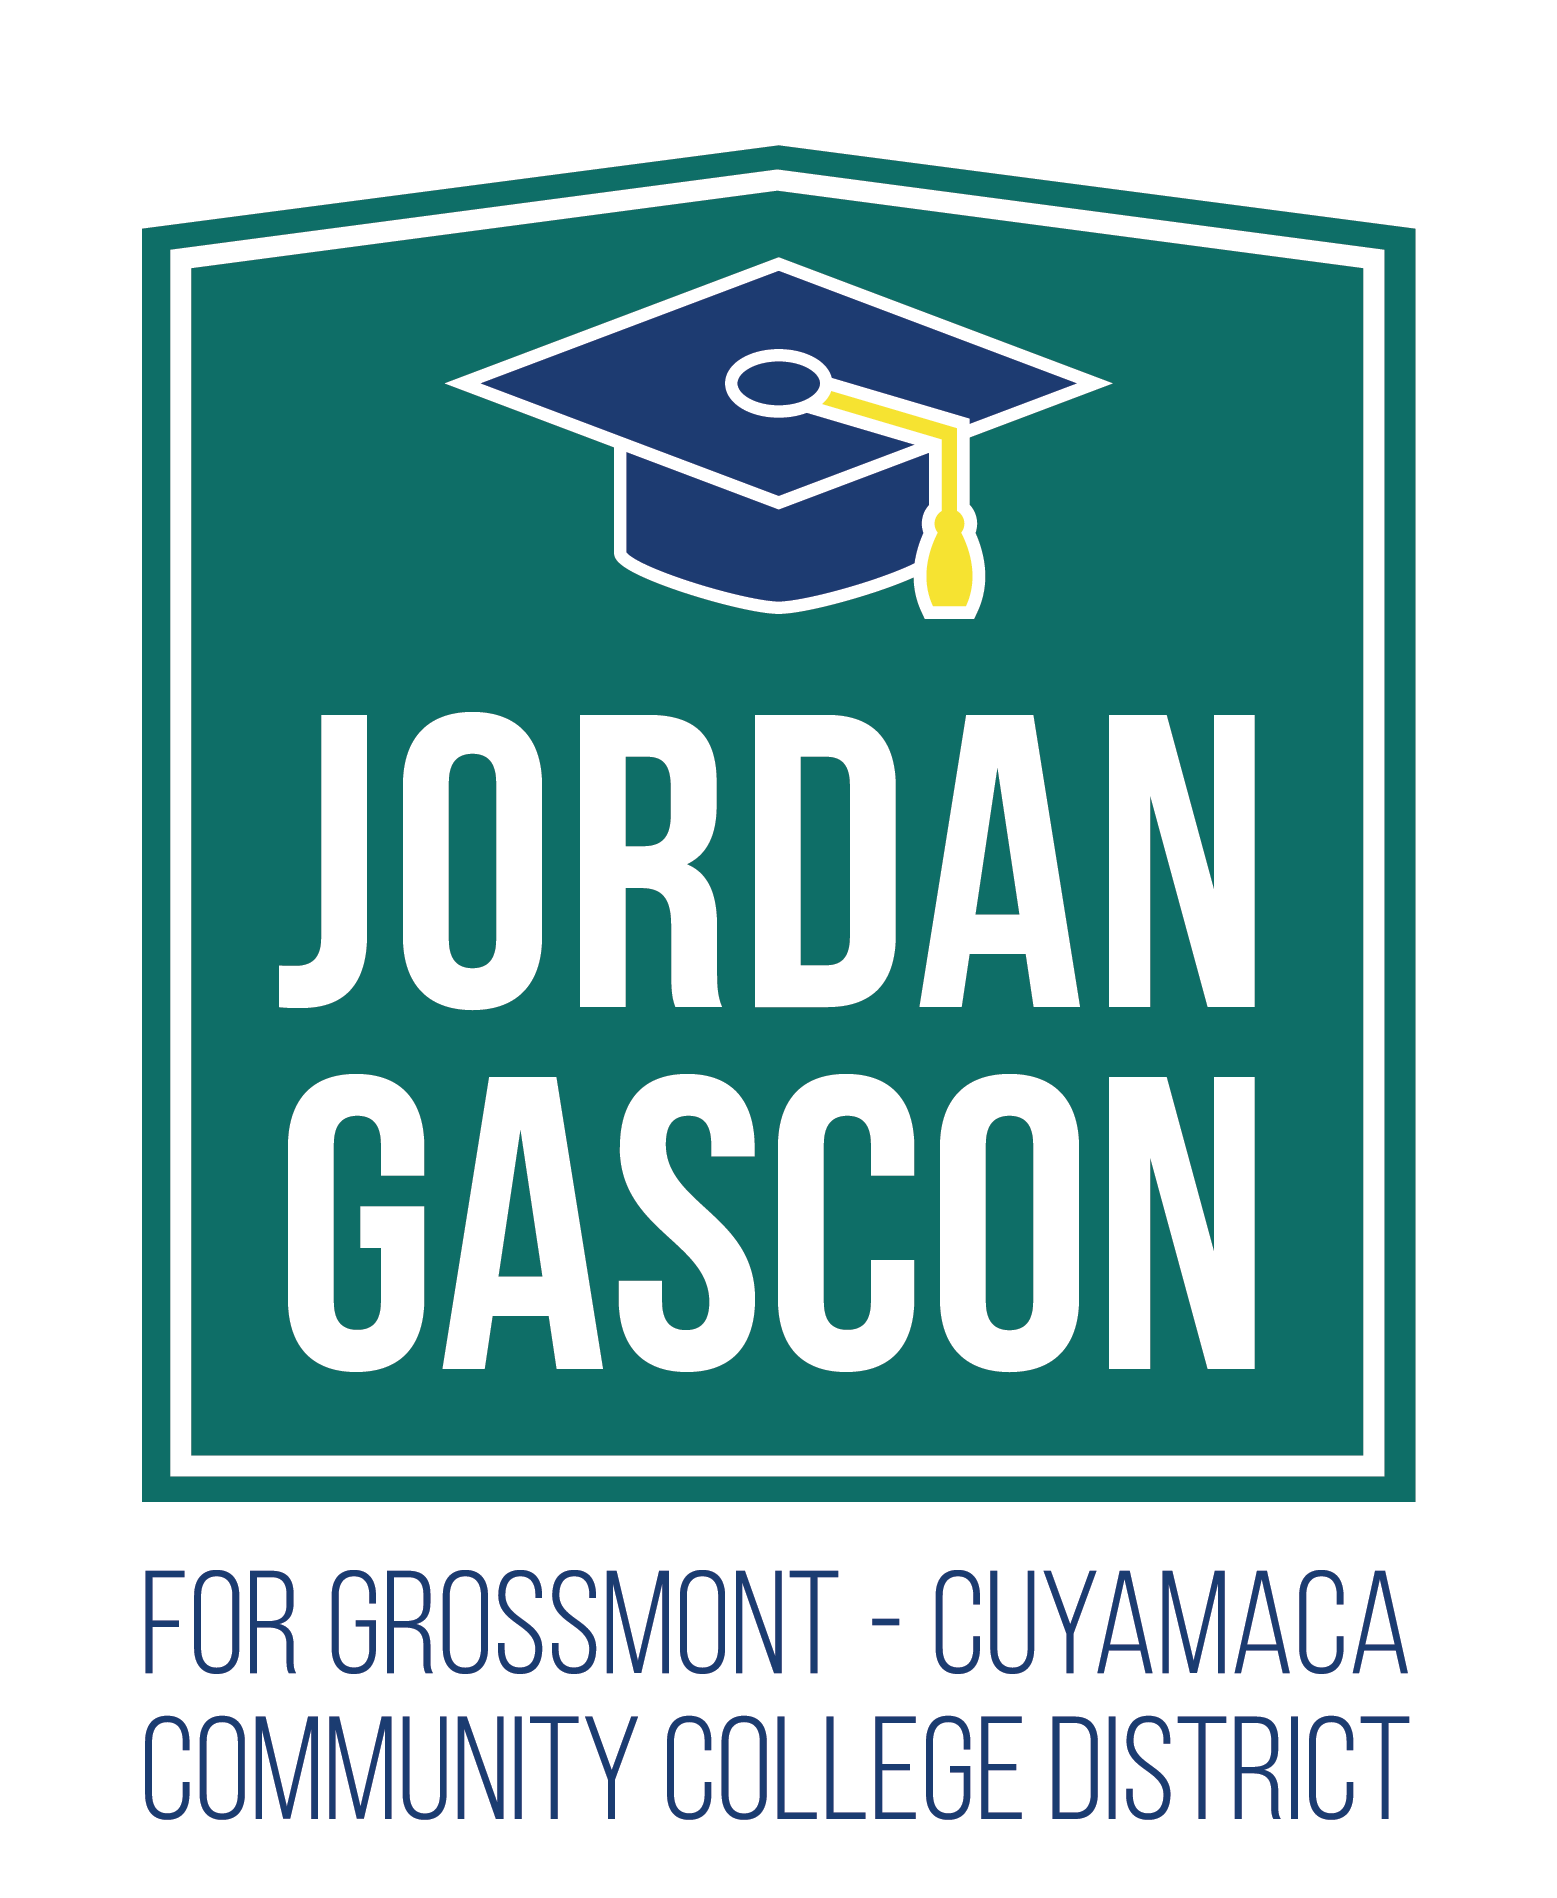 Jordan Gascon for Grossmont-Cuyamaca Community College District